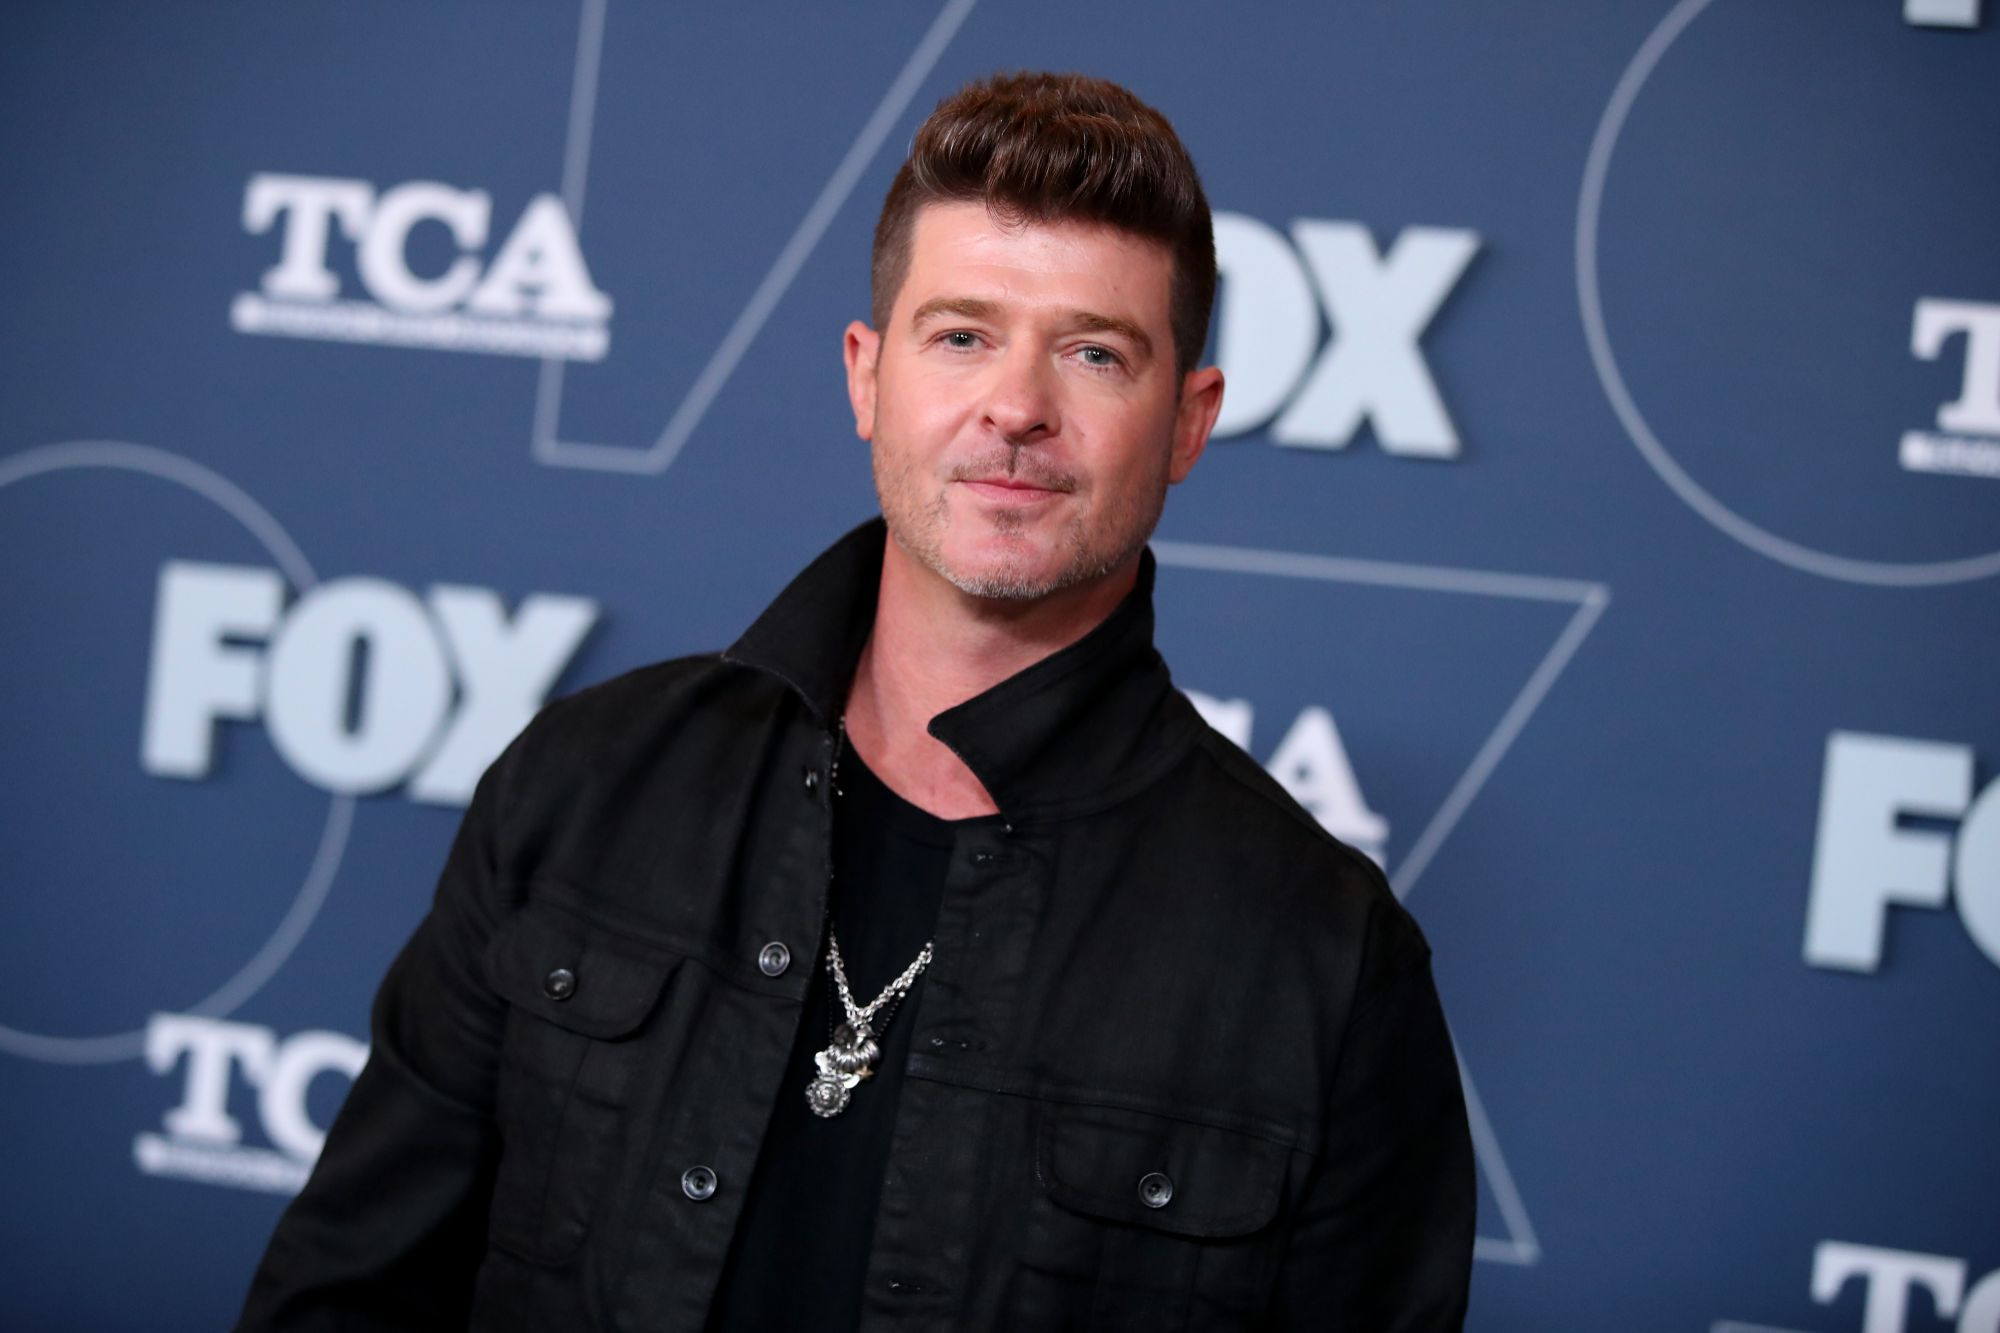 robin-thicke-opens-up-about-abusing-painkillers:-'i-was-suffering-blow-after-blow'